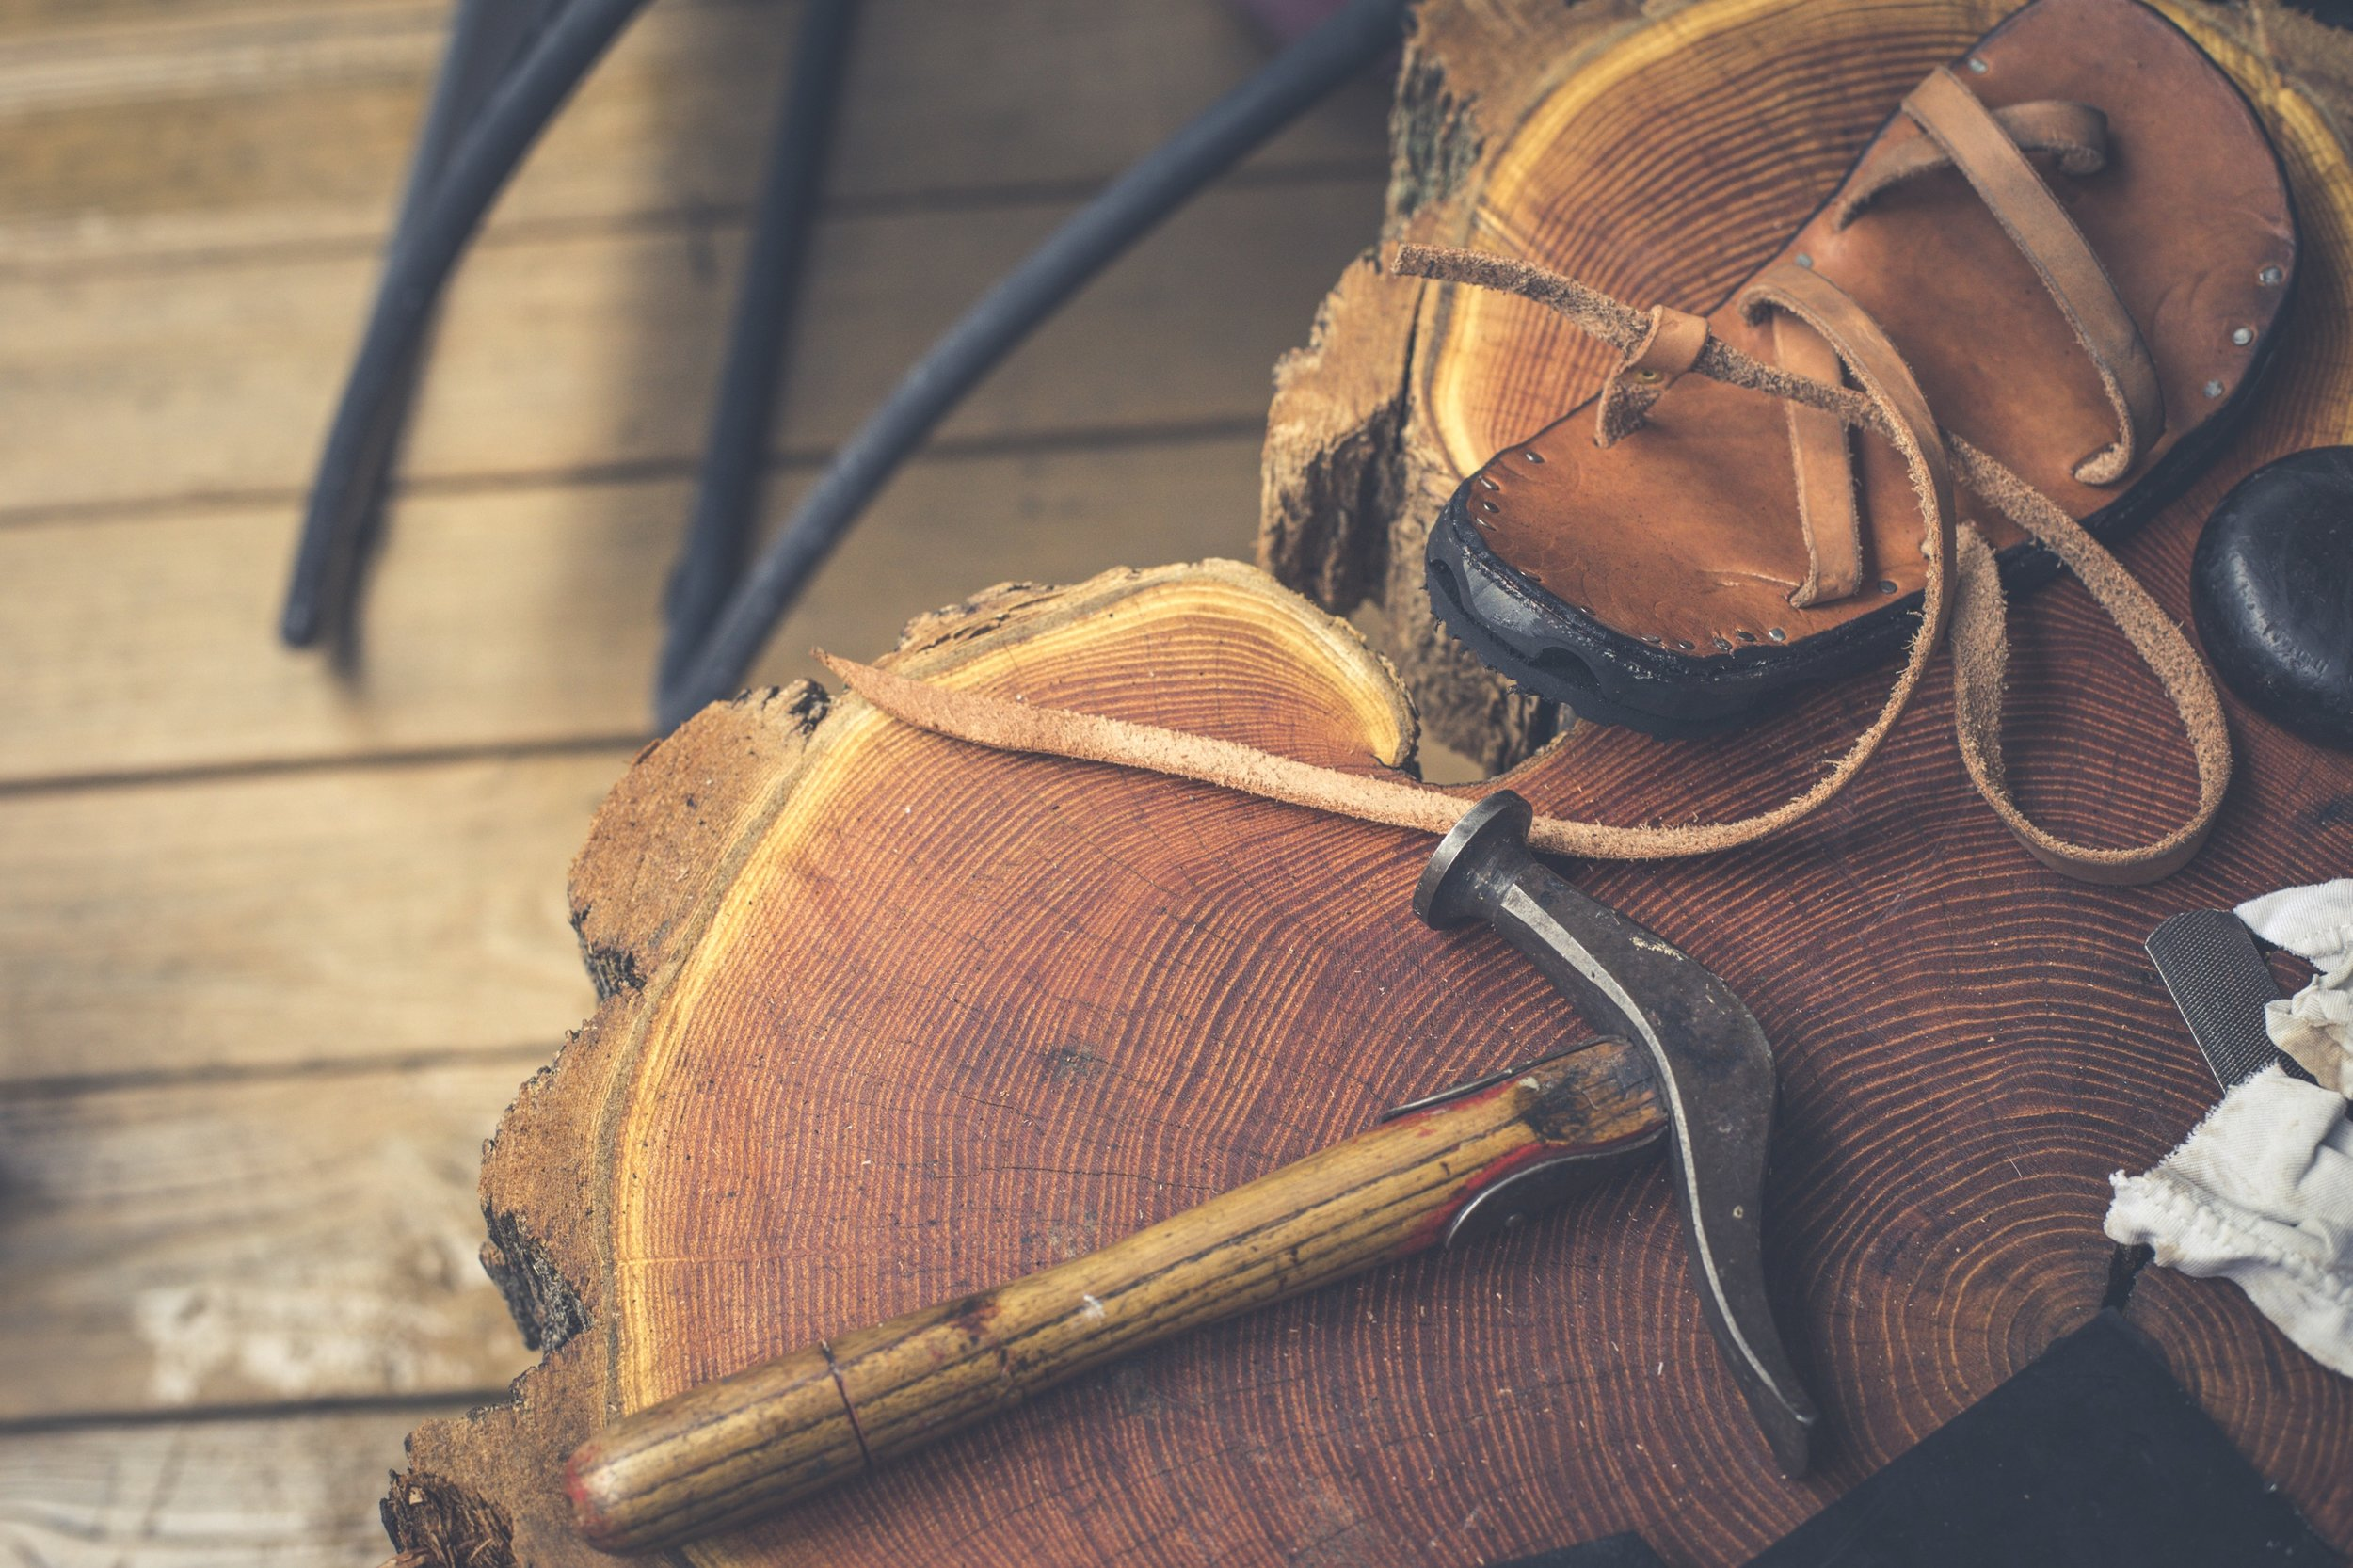 A little story about handmade shoes and the marks of a maker.